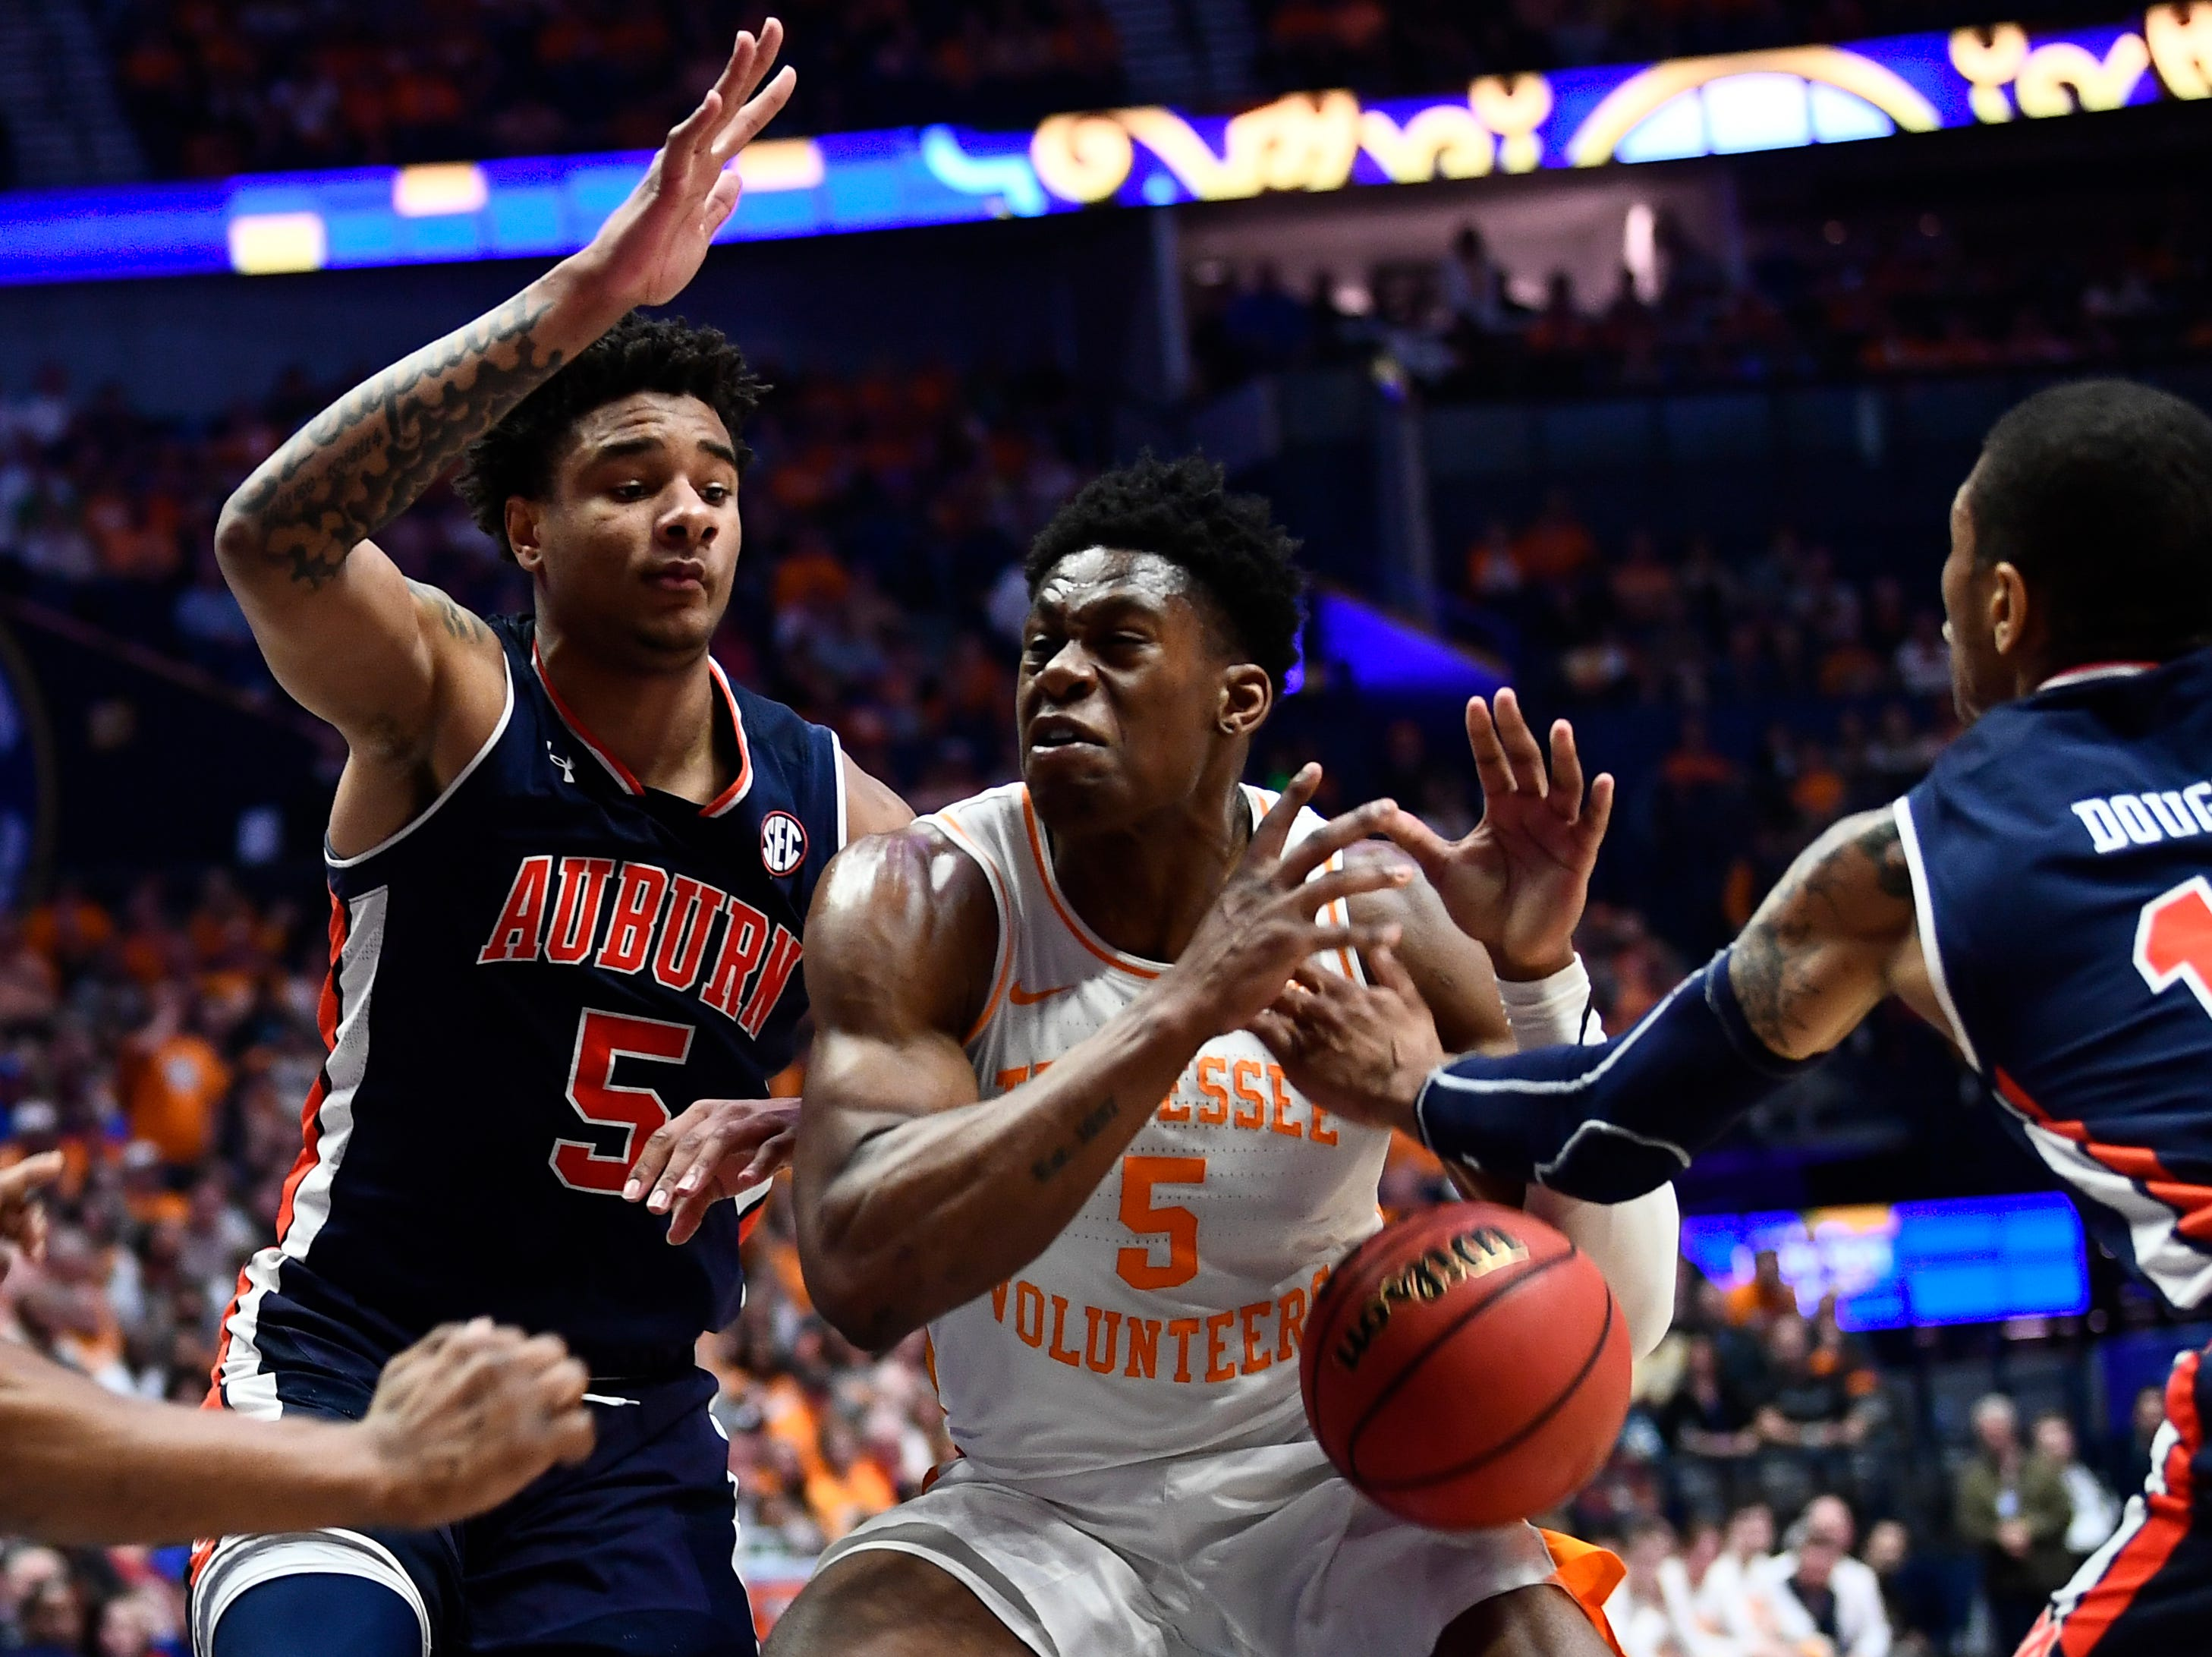 Tennessee guard Admiral Schofield (5) gets the ball knocked out of his possession by Auburn guard Samir Doughty (10) during the first half of the SEC Men's Basketball Tournament championship game at Bridgestone Arena in Nashville, Tenn., Sunday, March 17, 2019.